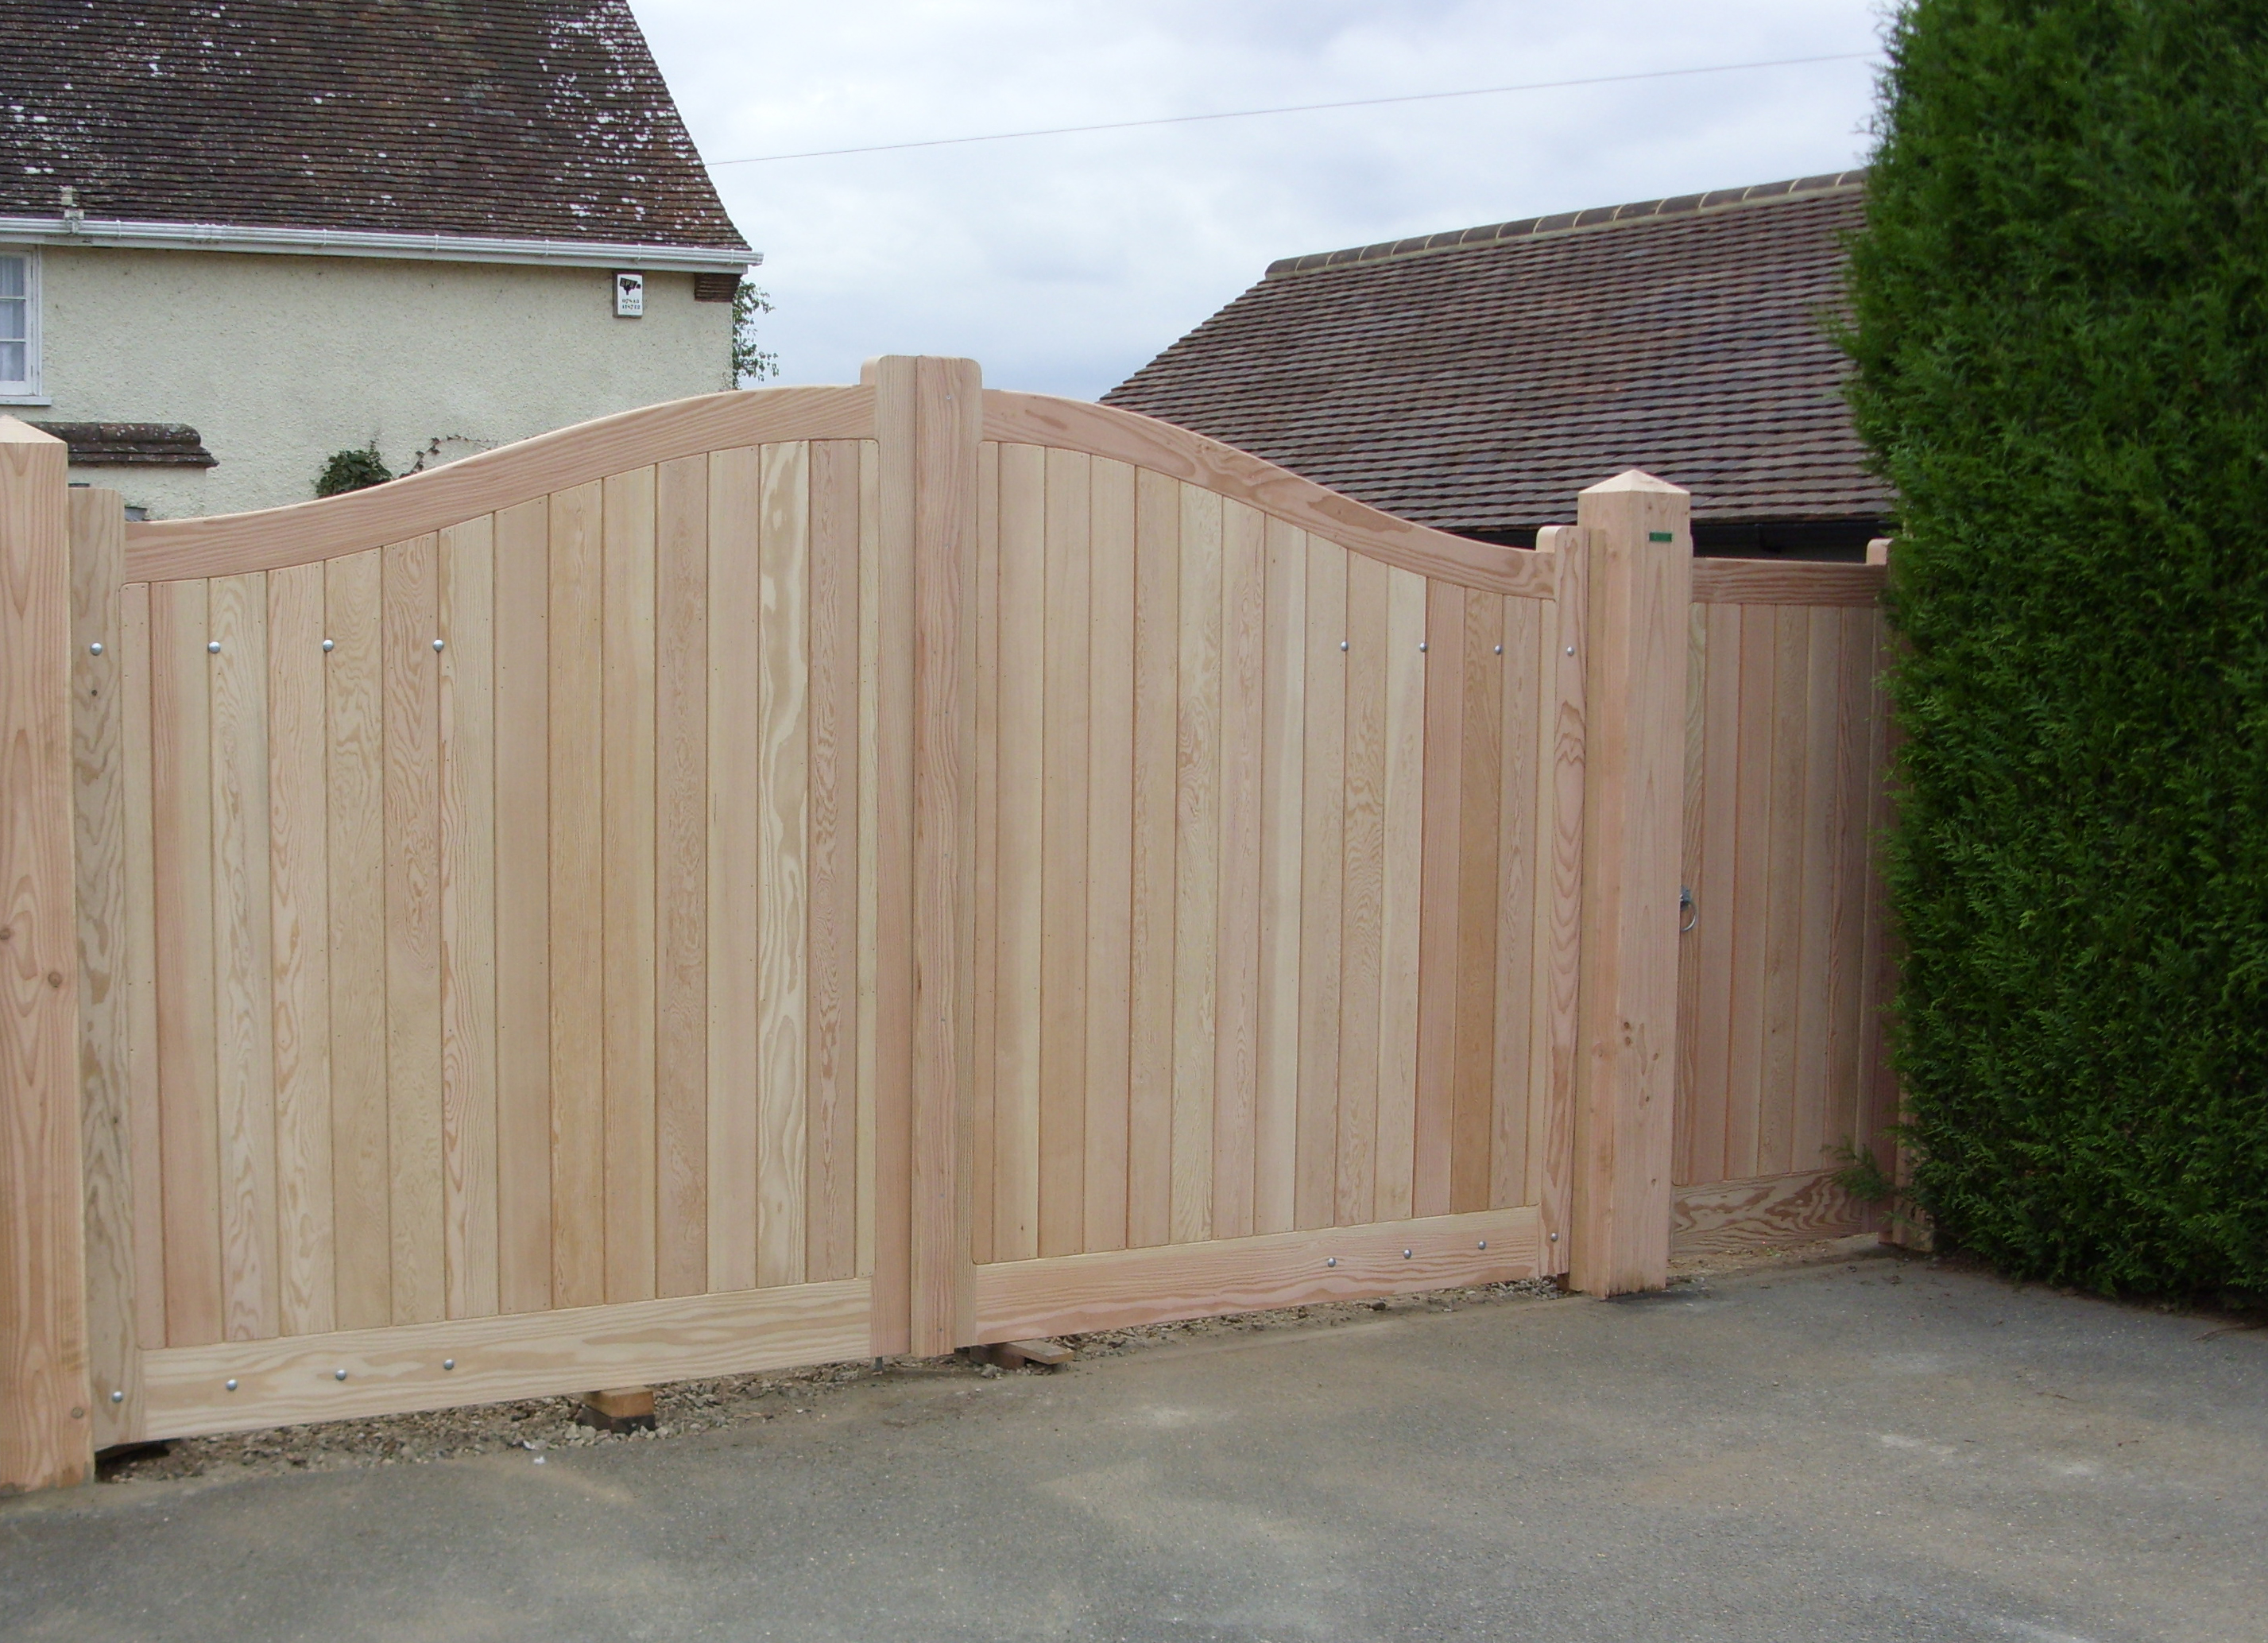 Douglas fir gates and posts